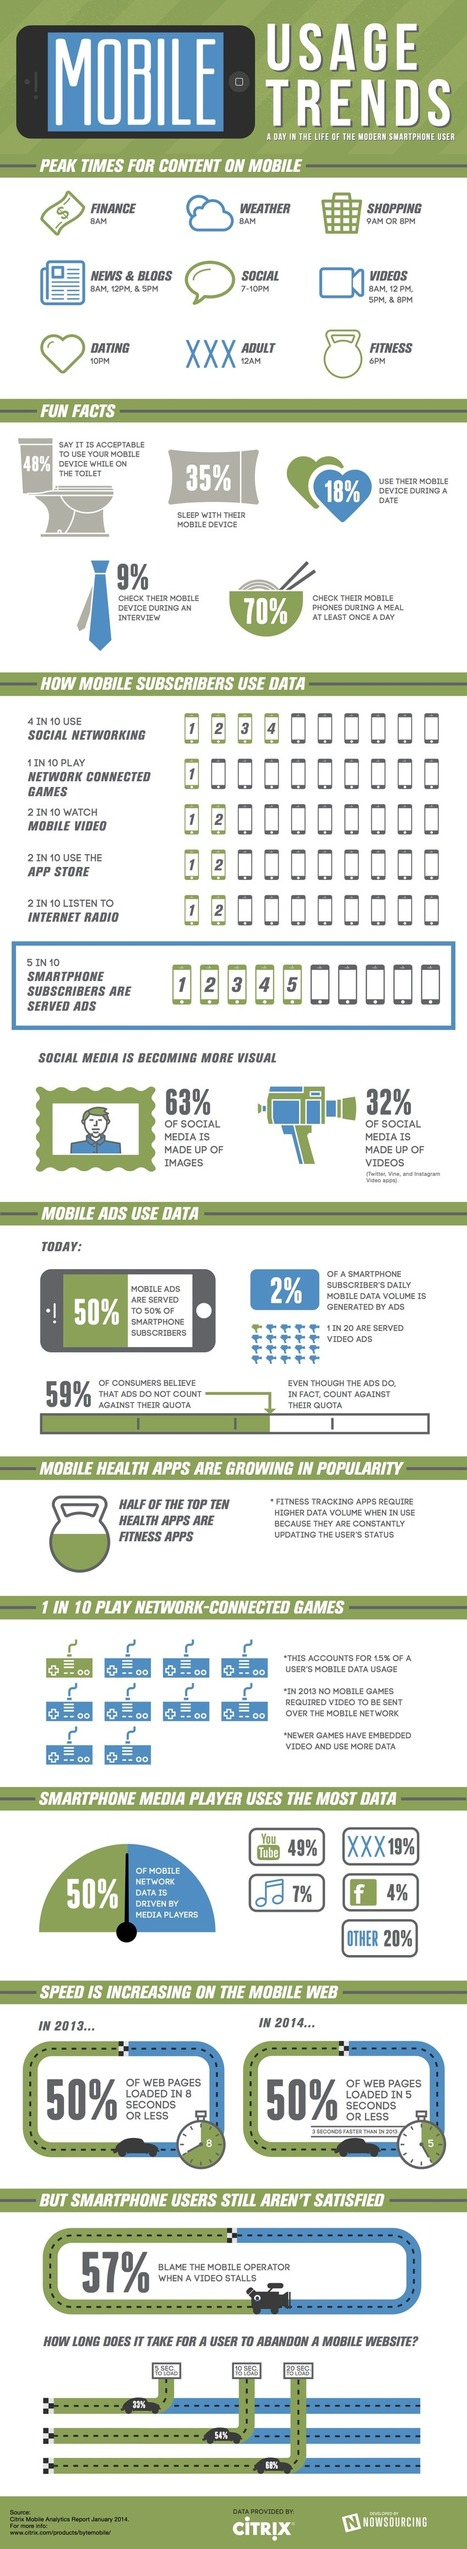 A Day in the Life of the Modern Smartphone User [Infographic] | Anything Mobile | Scoop.it